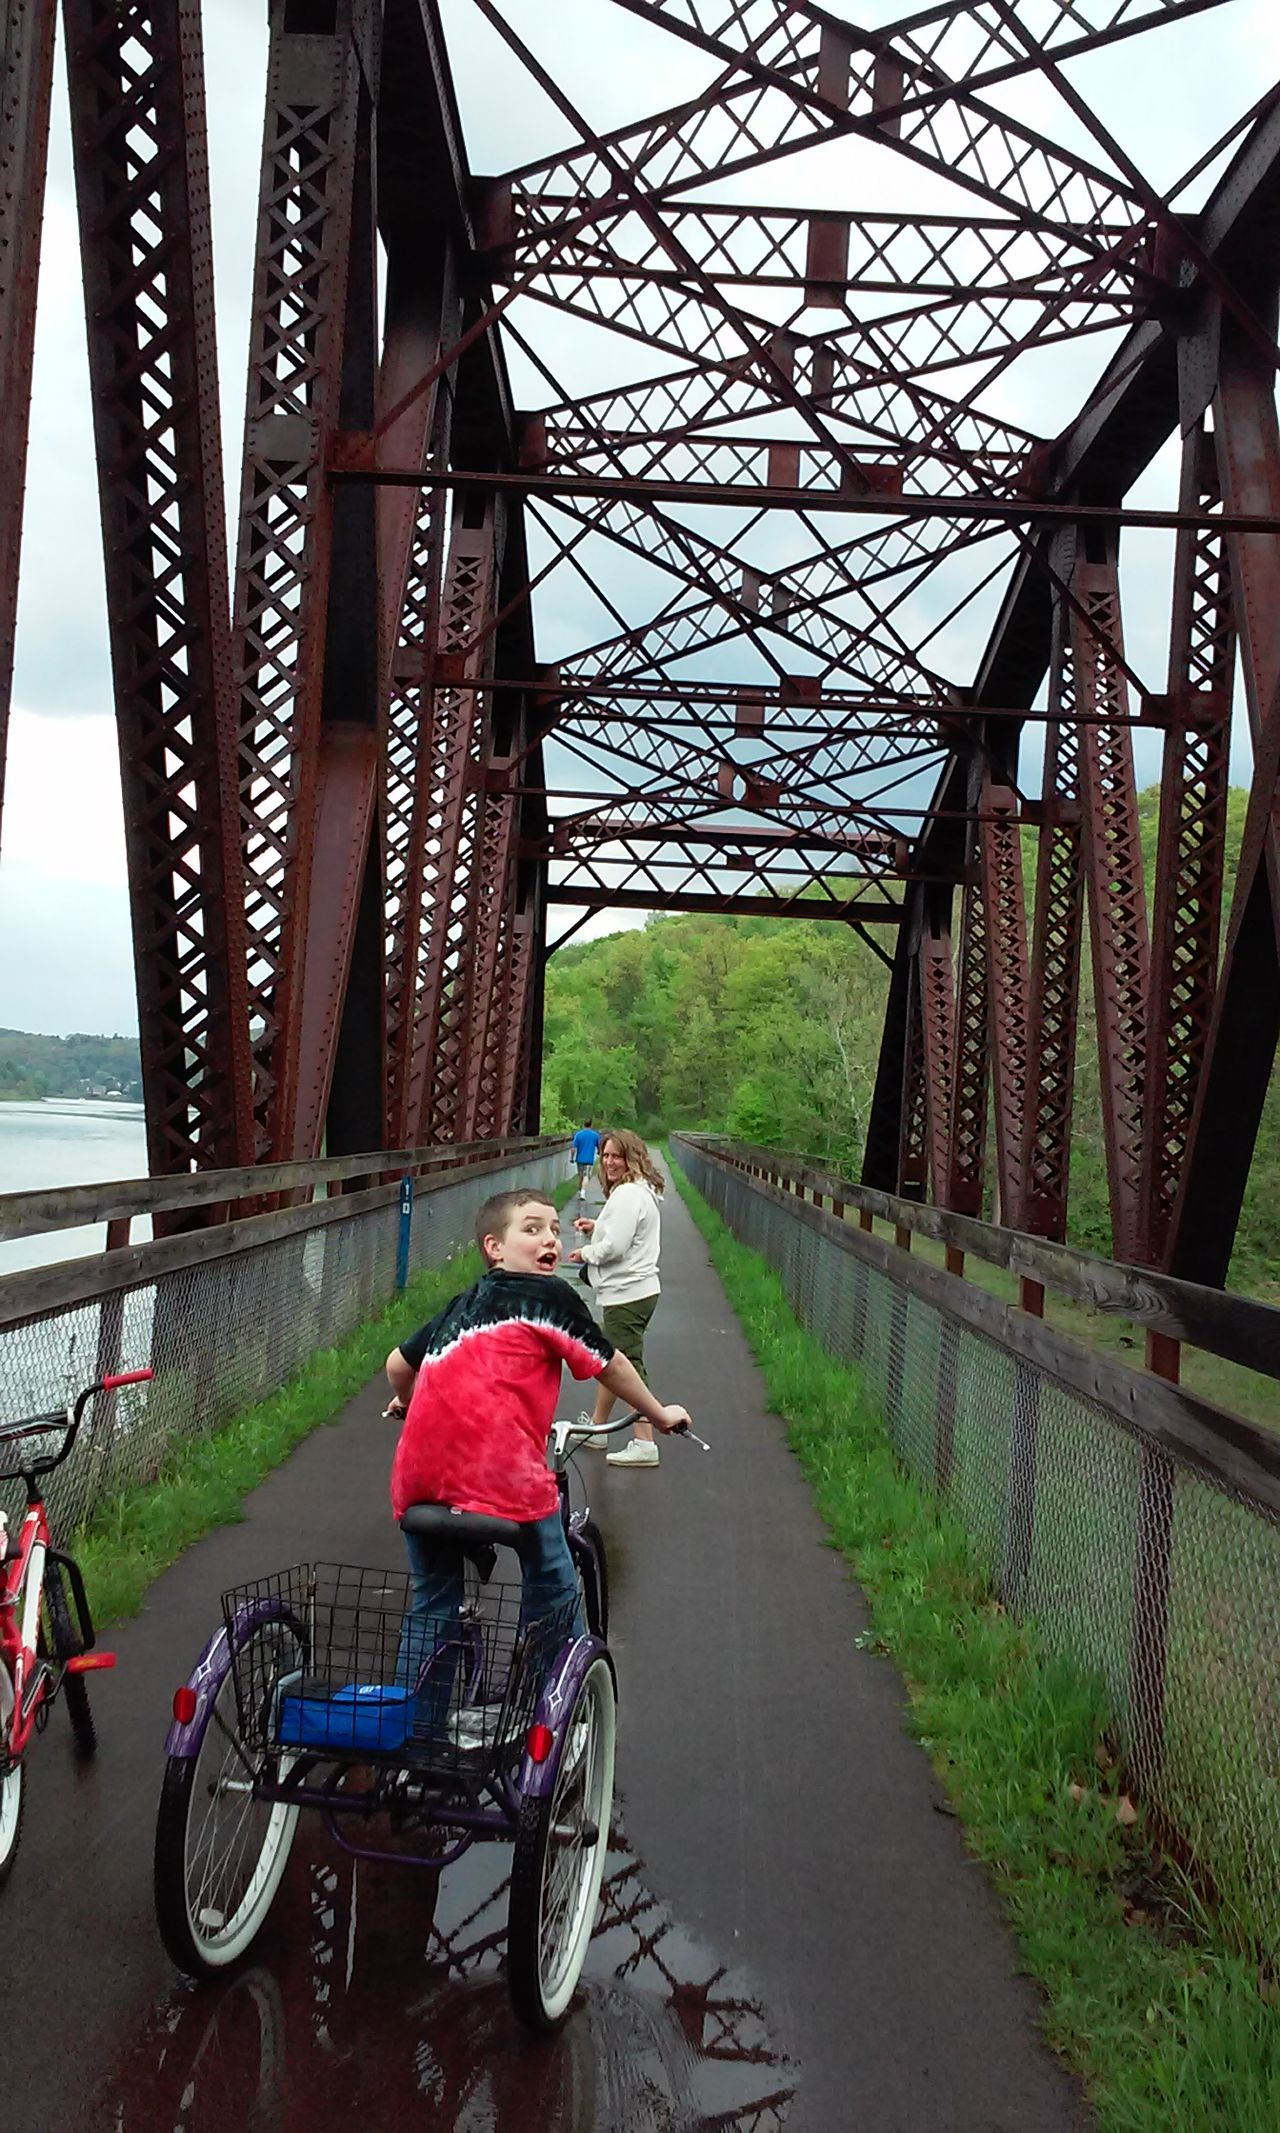 CyclingUnites PeopleOutdoors 2 People Family Built Structure Nature Bike Ride Bike Trail Bridge Family Time Family Fun Funny Face